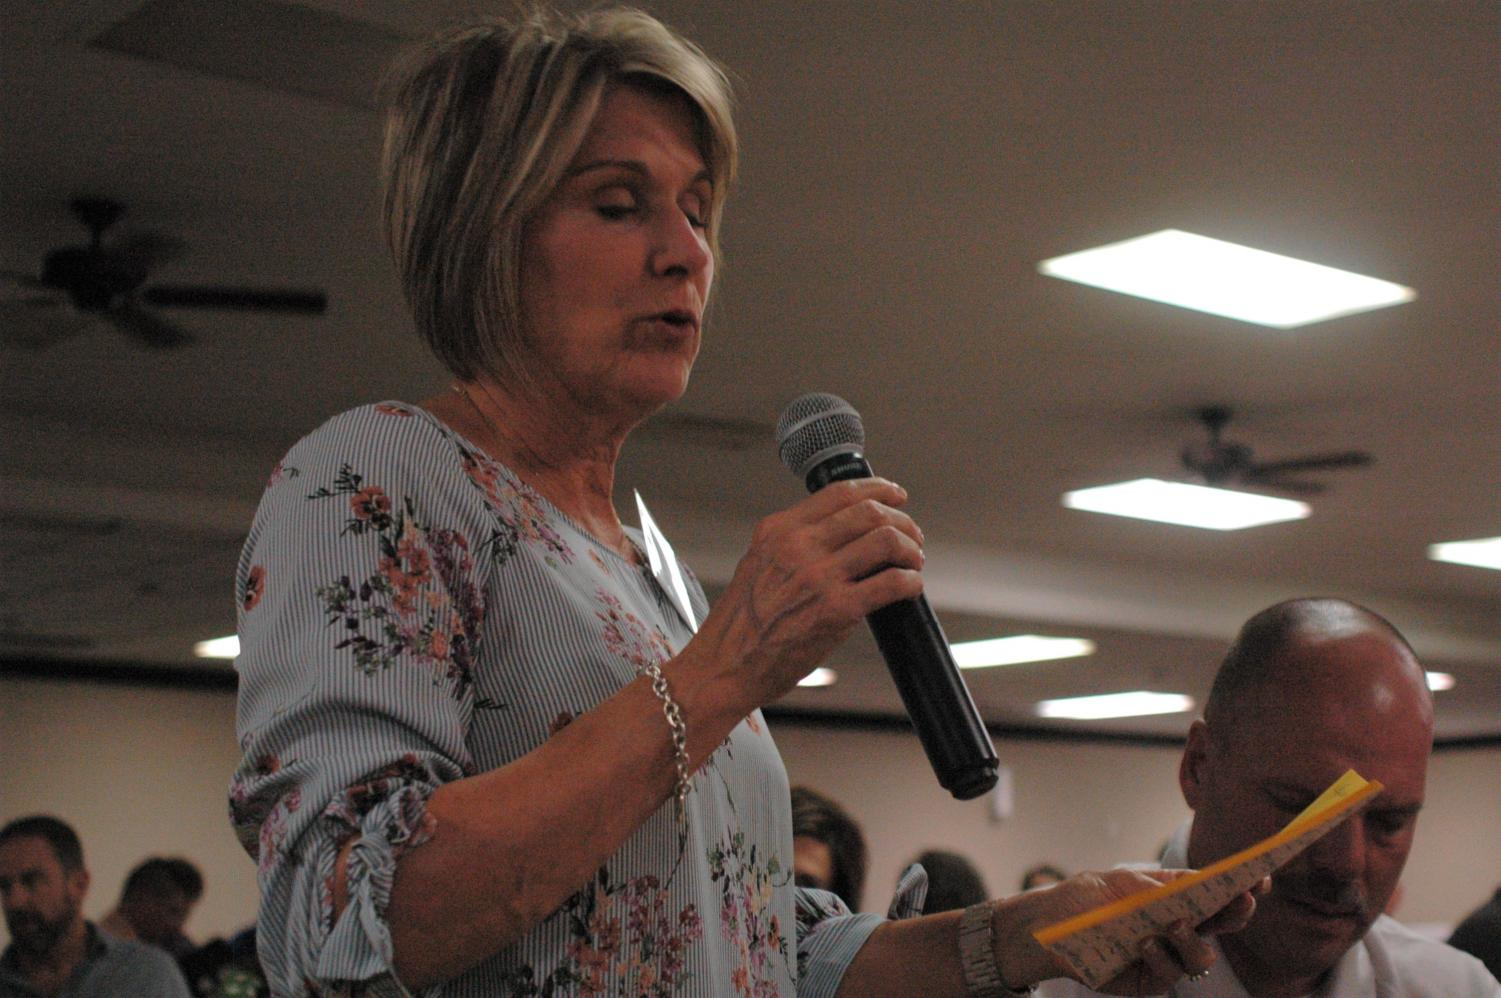 Representative Barbara Wasinger reads her table's community improvement suggestions during the Strategic Doing on Sept. 9.